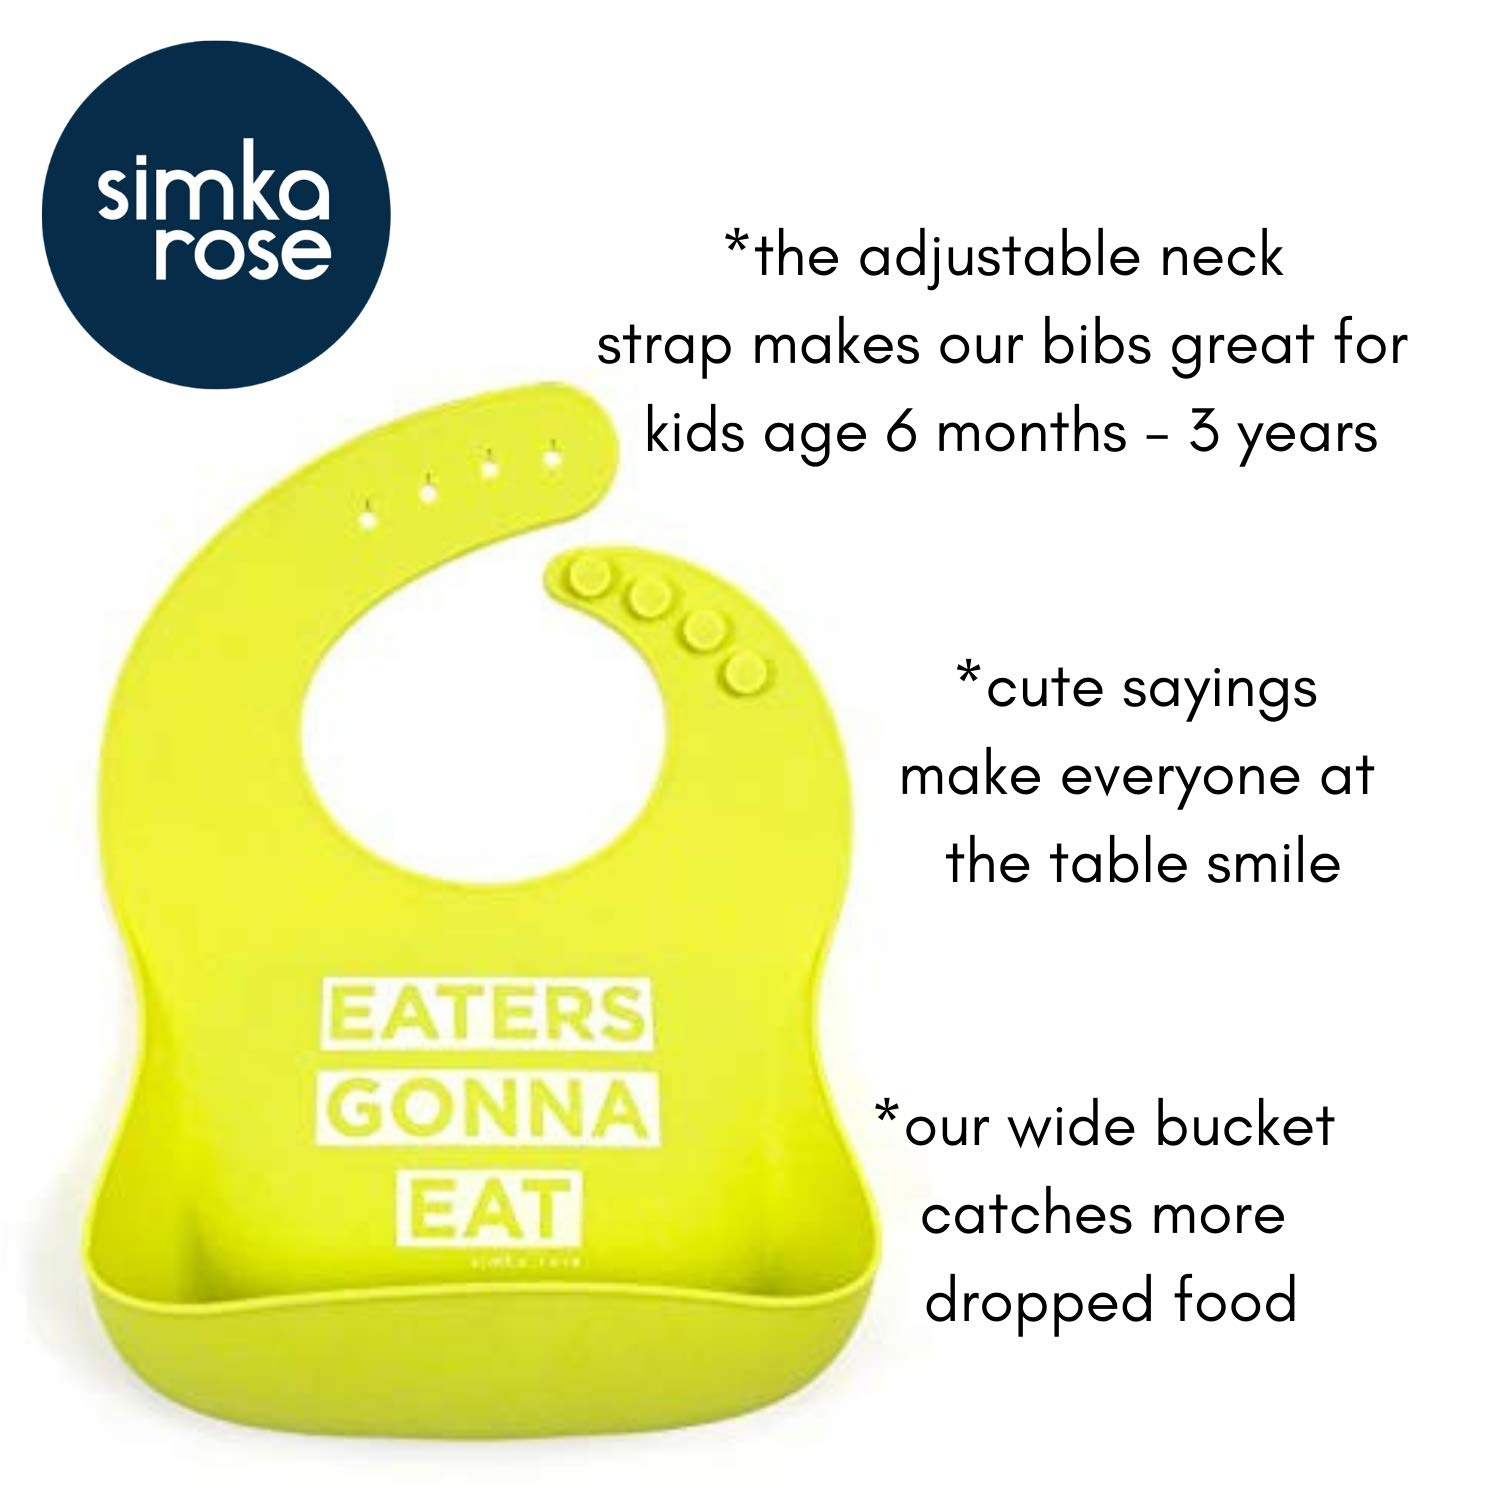 Waterproof Baby Bibs for Girls and Boys Perfect for Babies and Toddlers Easy to Clean Feeding Bibs Navy/Lime Simka Rose Silicone Bib Set of 2 Excellent Baby Shower Gift